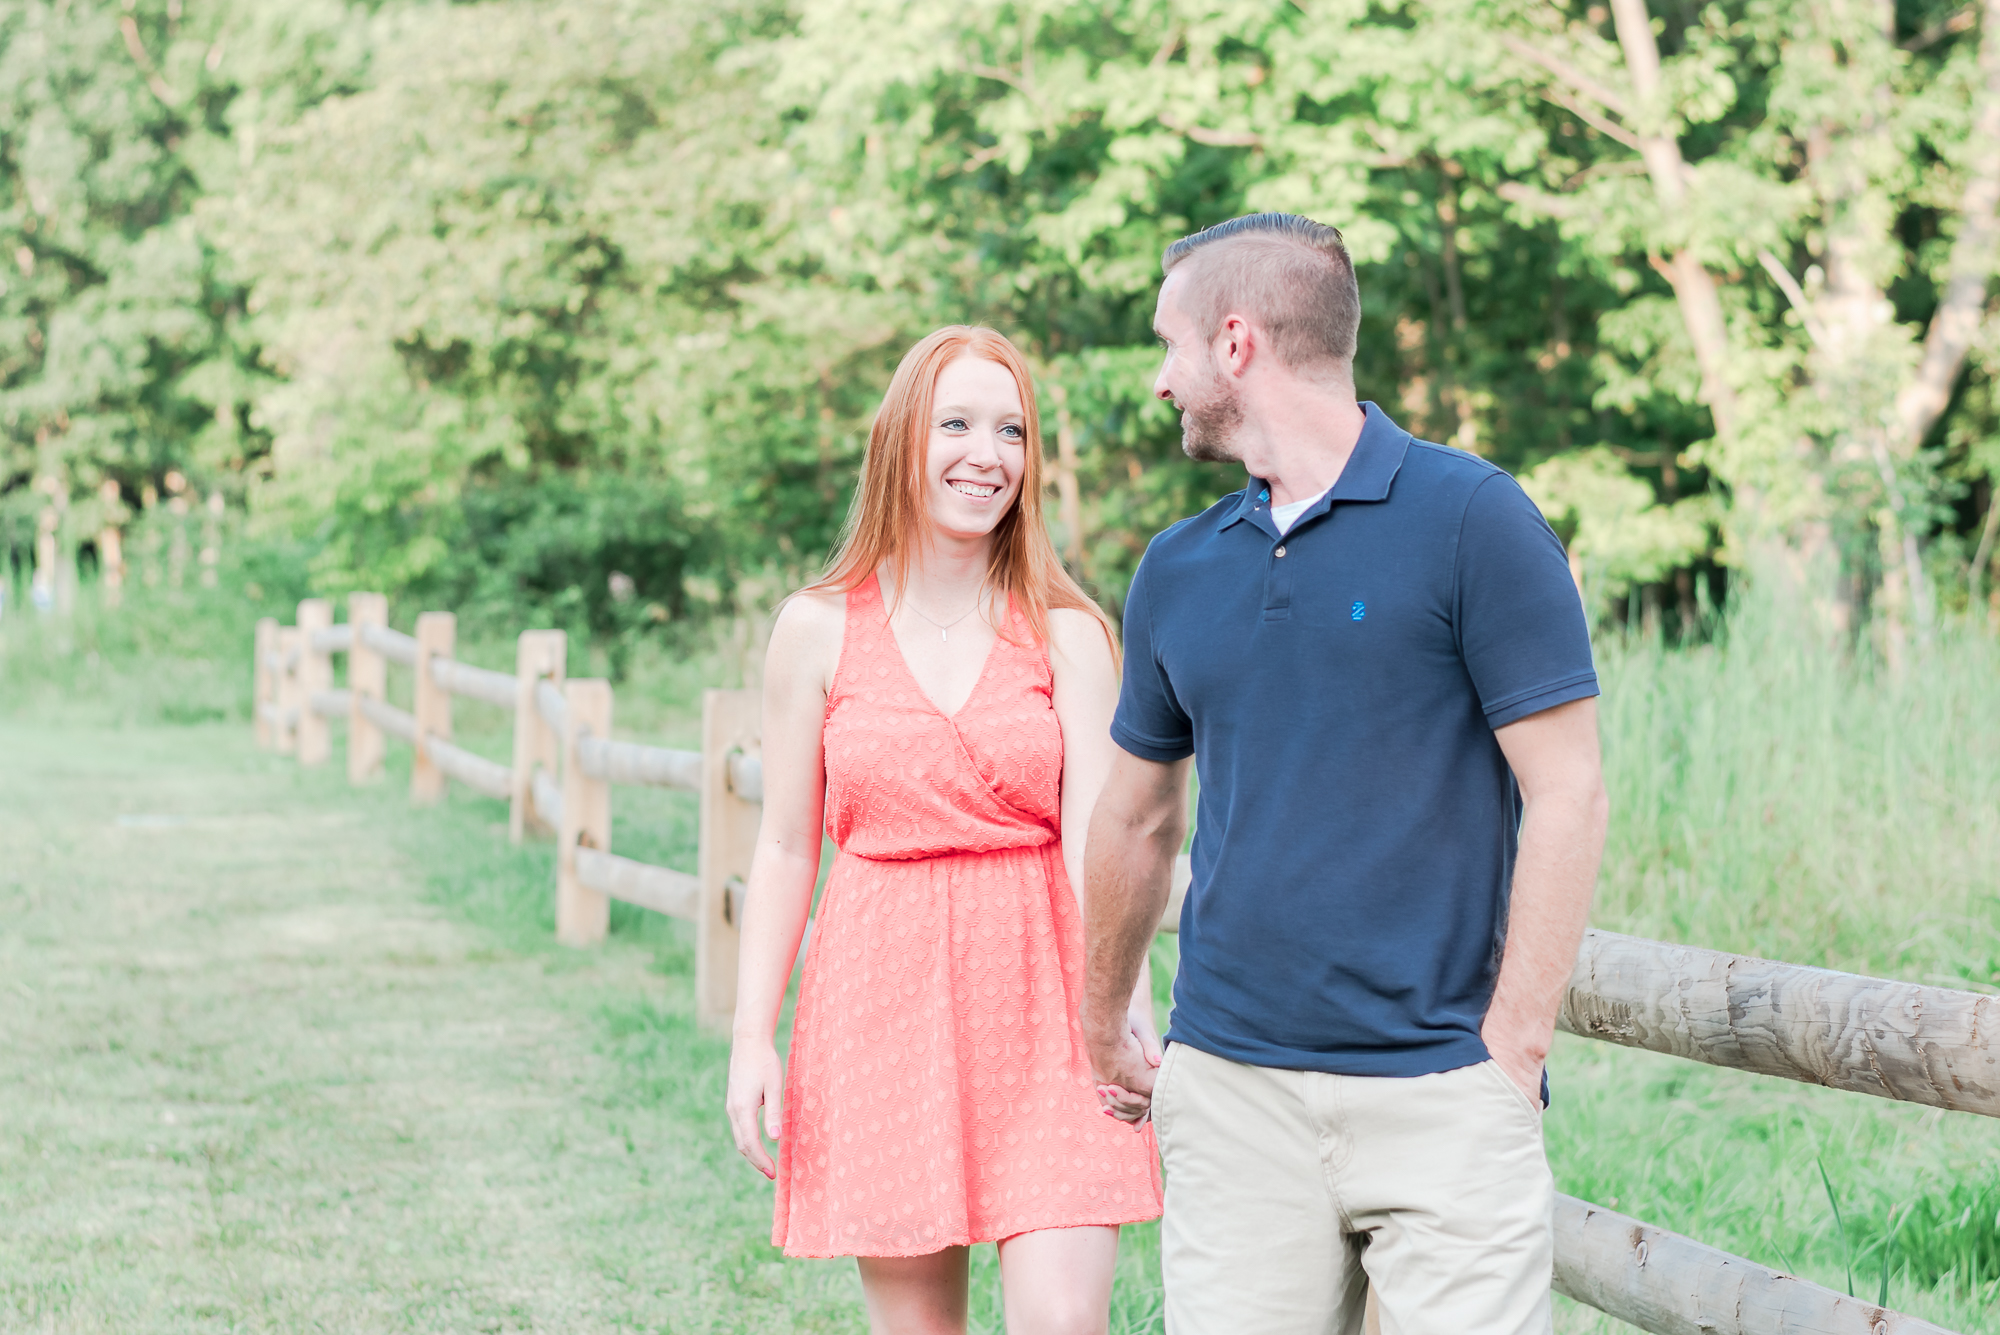 AB Favorites_Katy+Brian_Engagement Session_Brecksville Reservation_Brecksville_Ohio-5.jpg